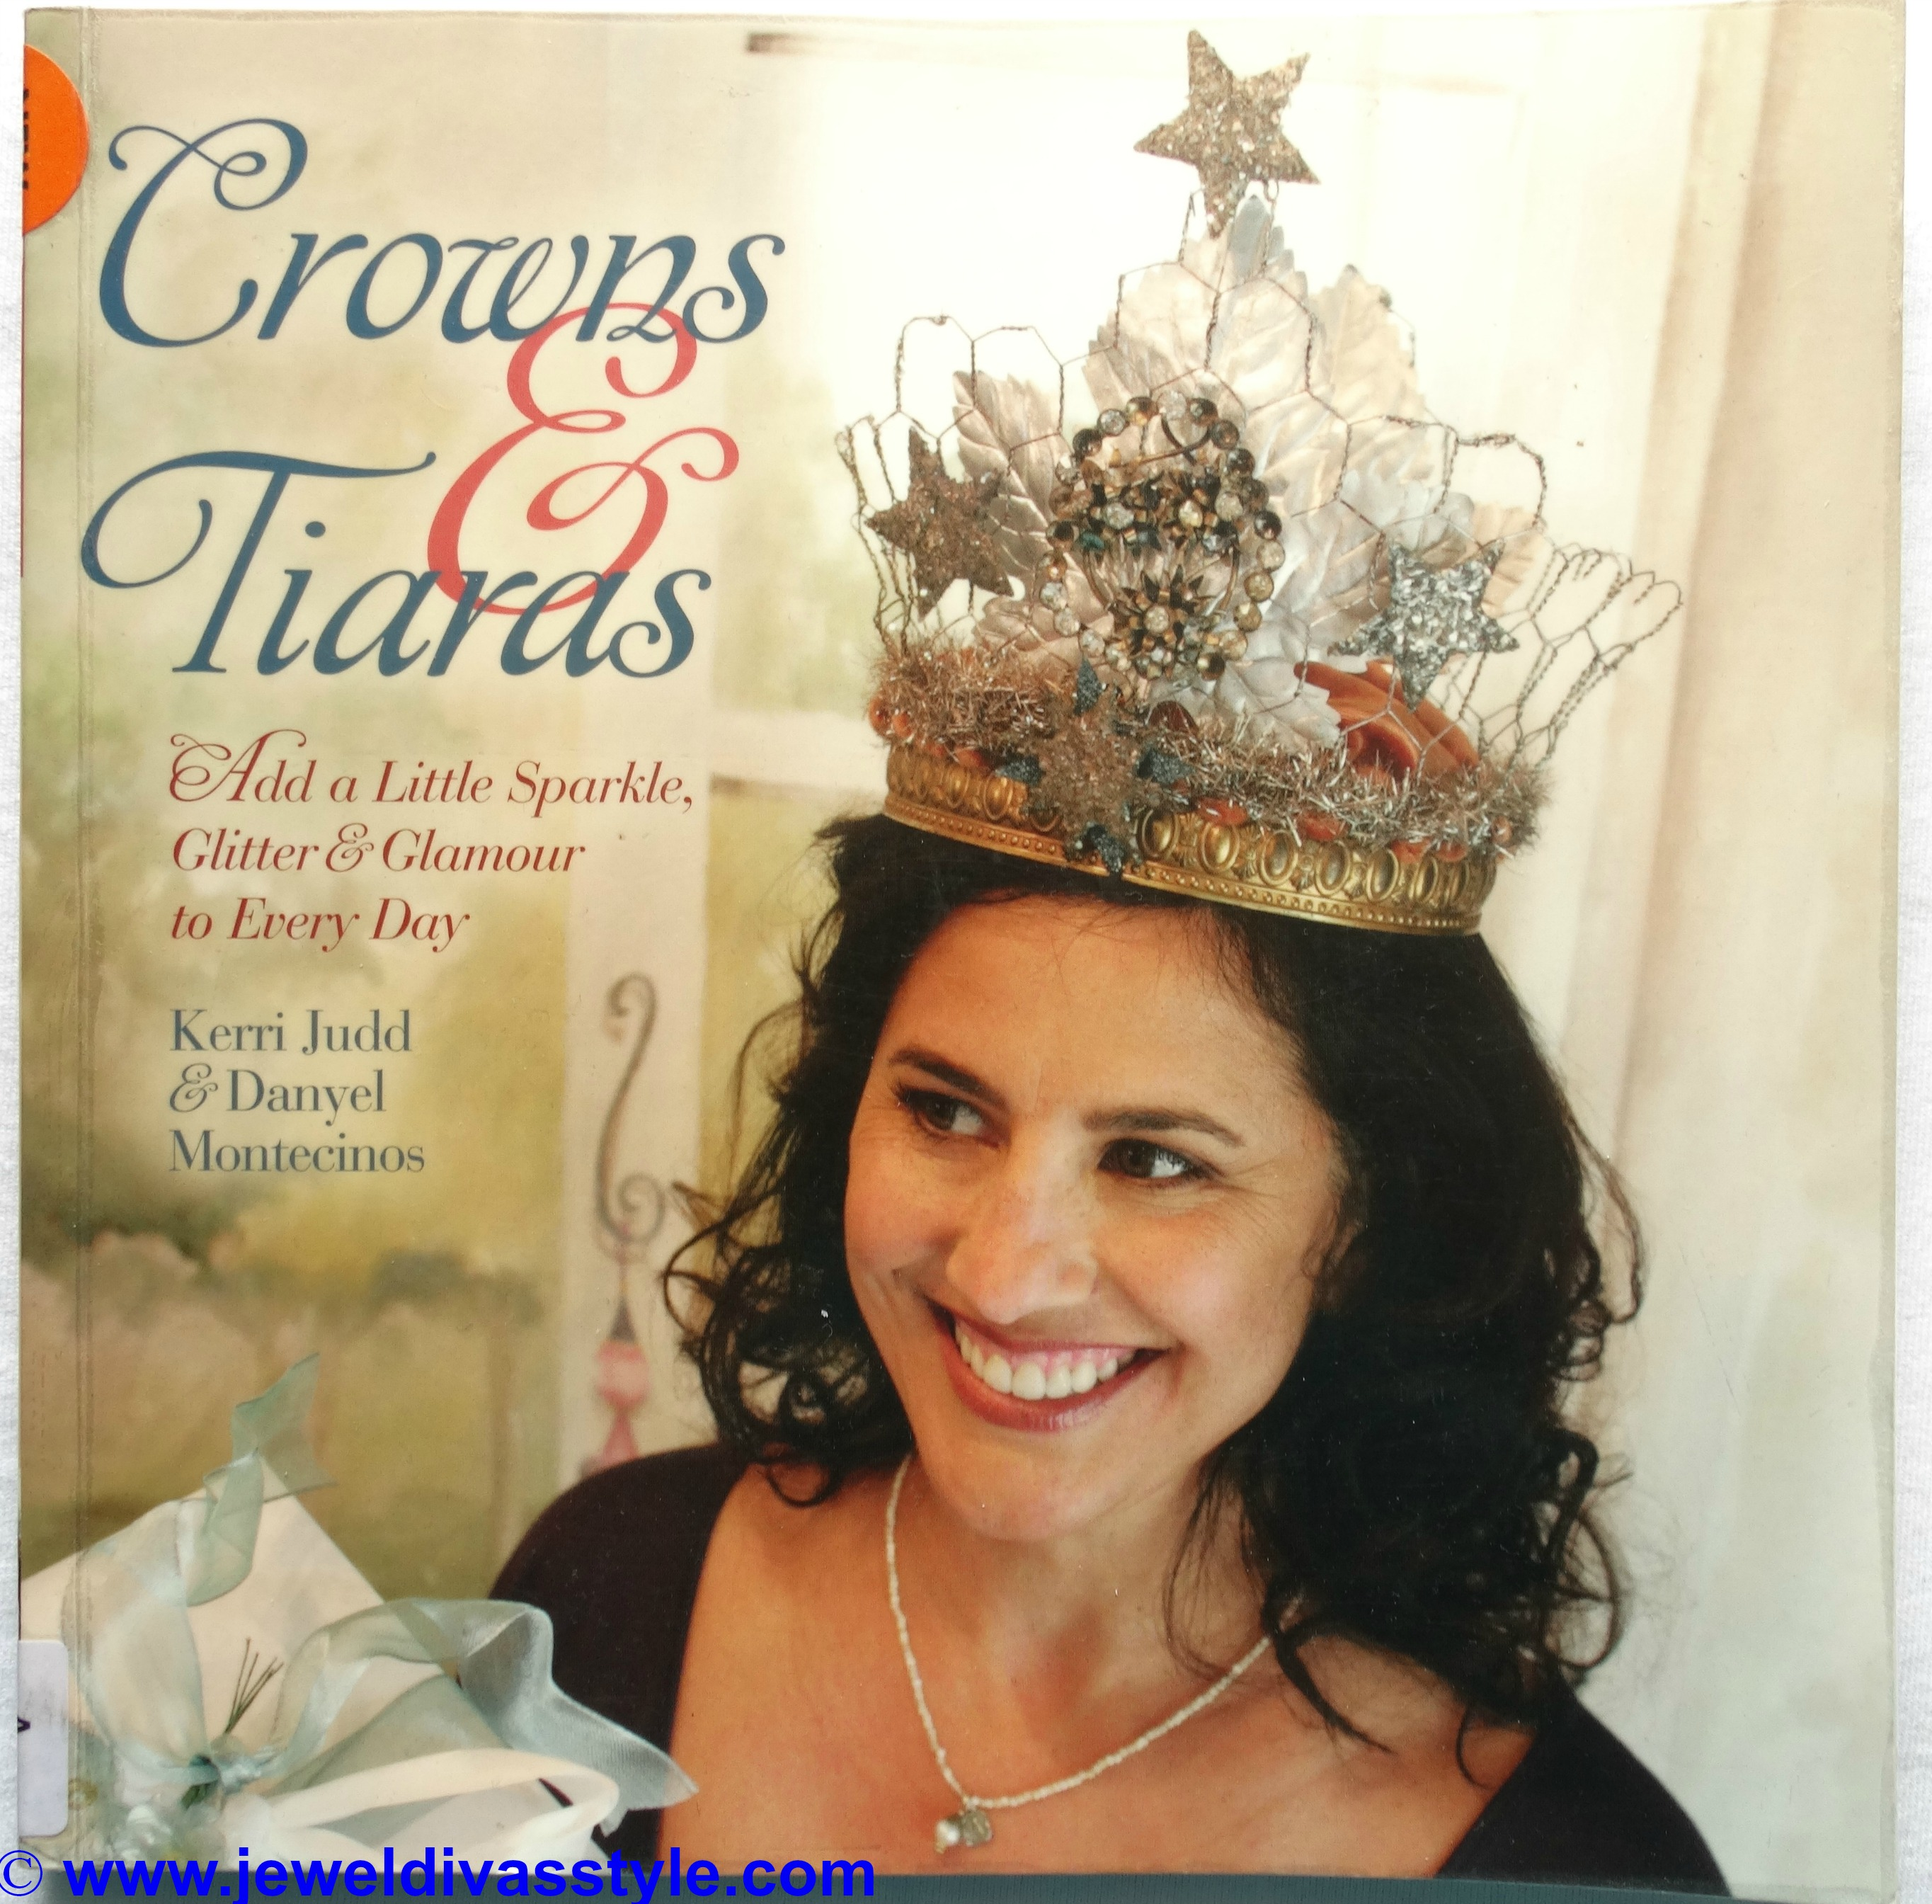 BOOK STYLE: Crowns & Tiaras